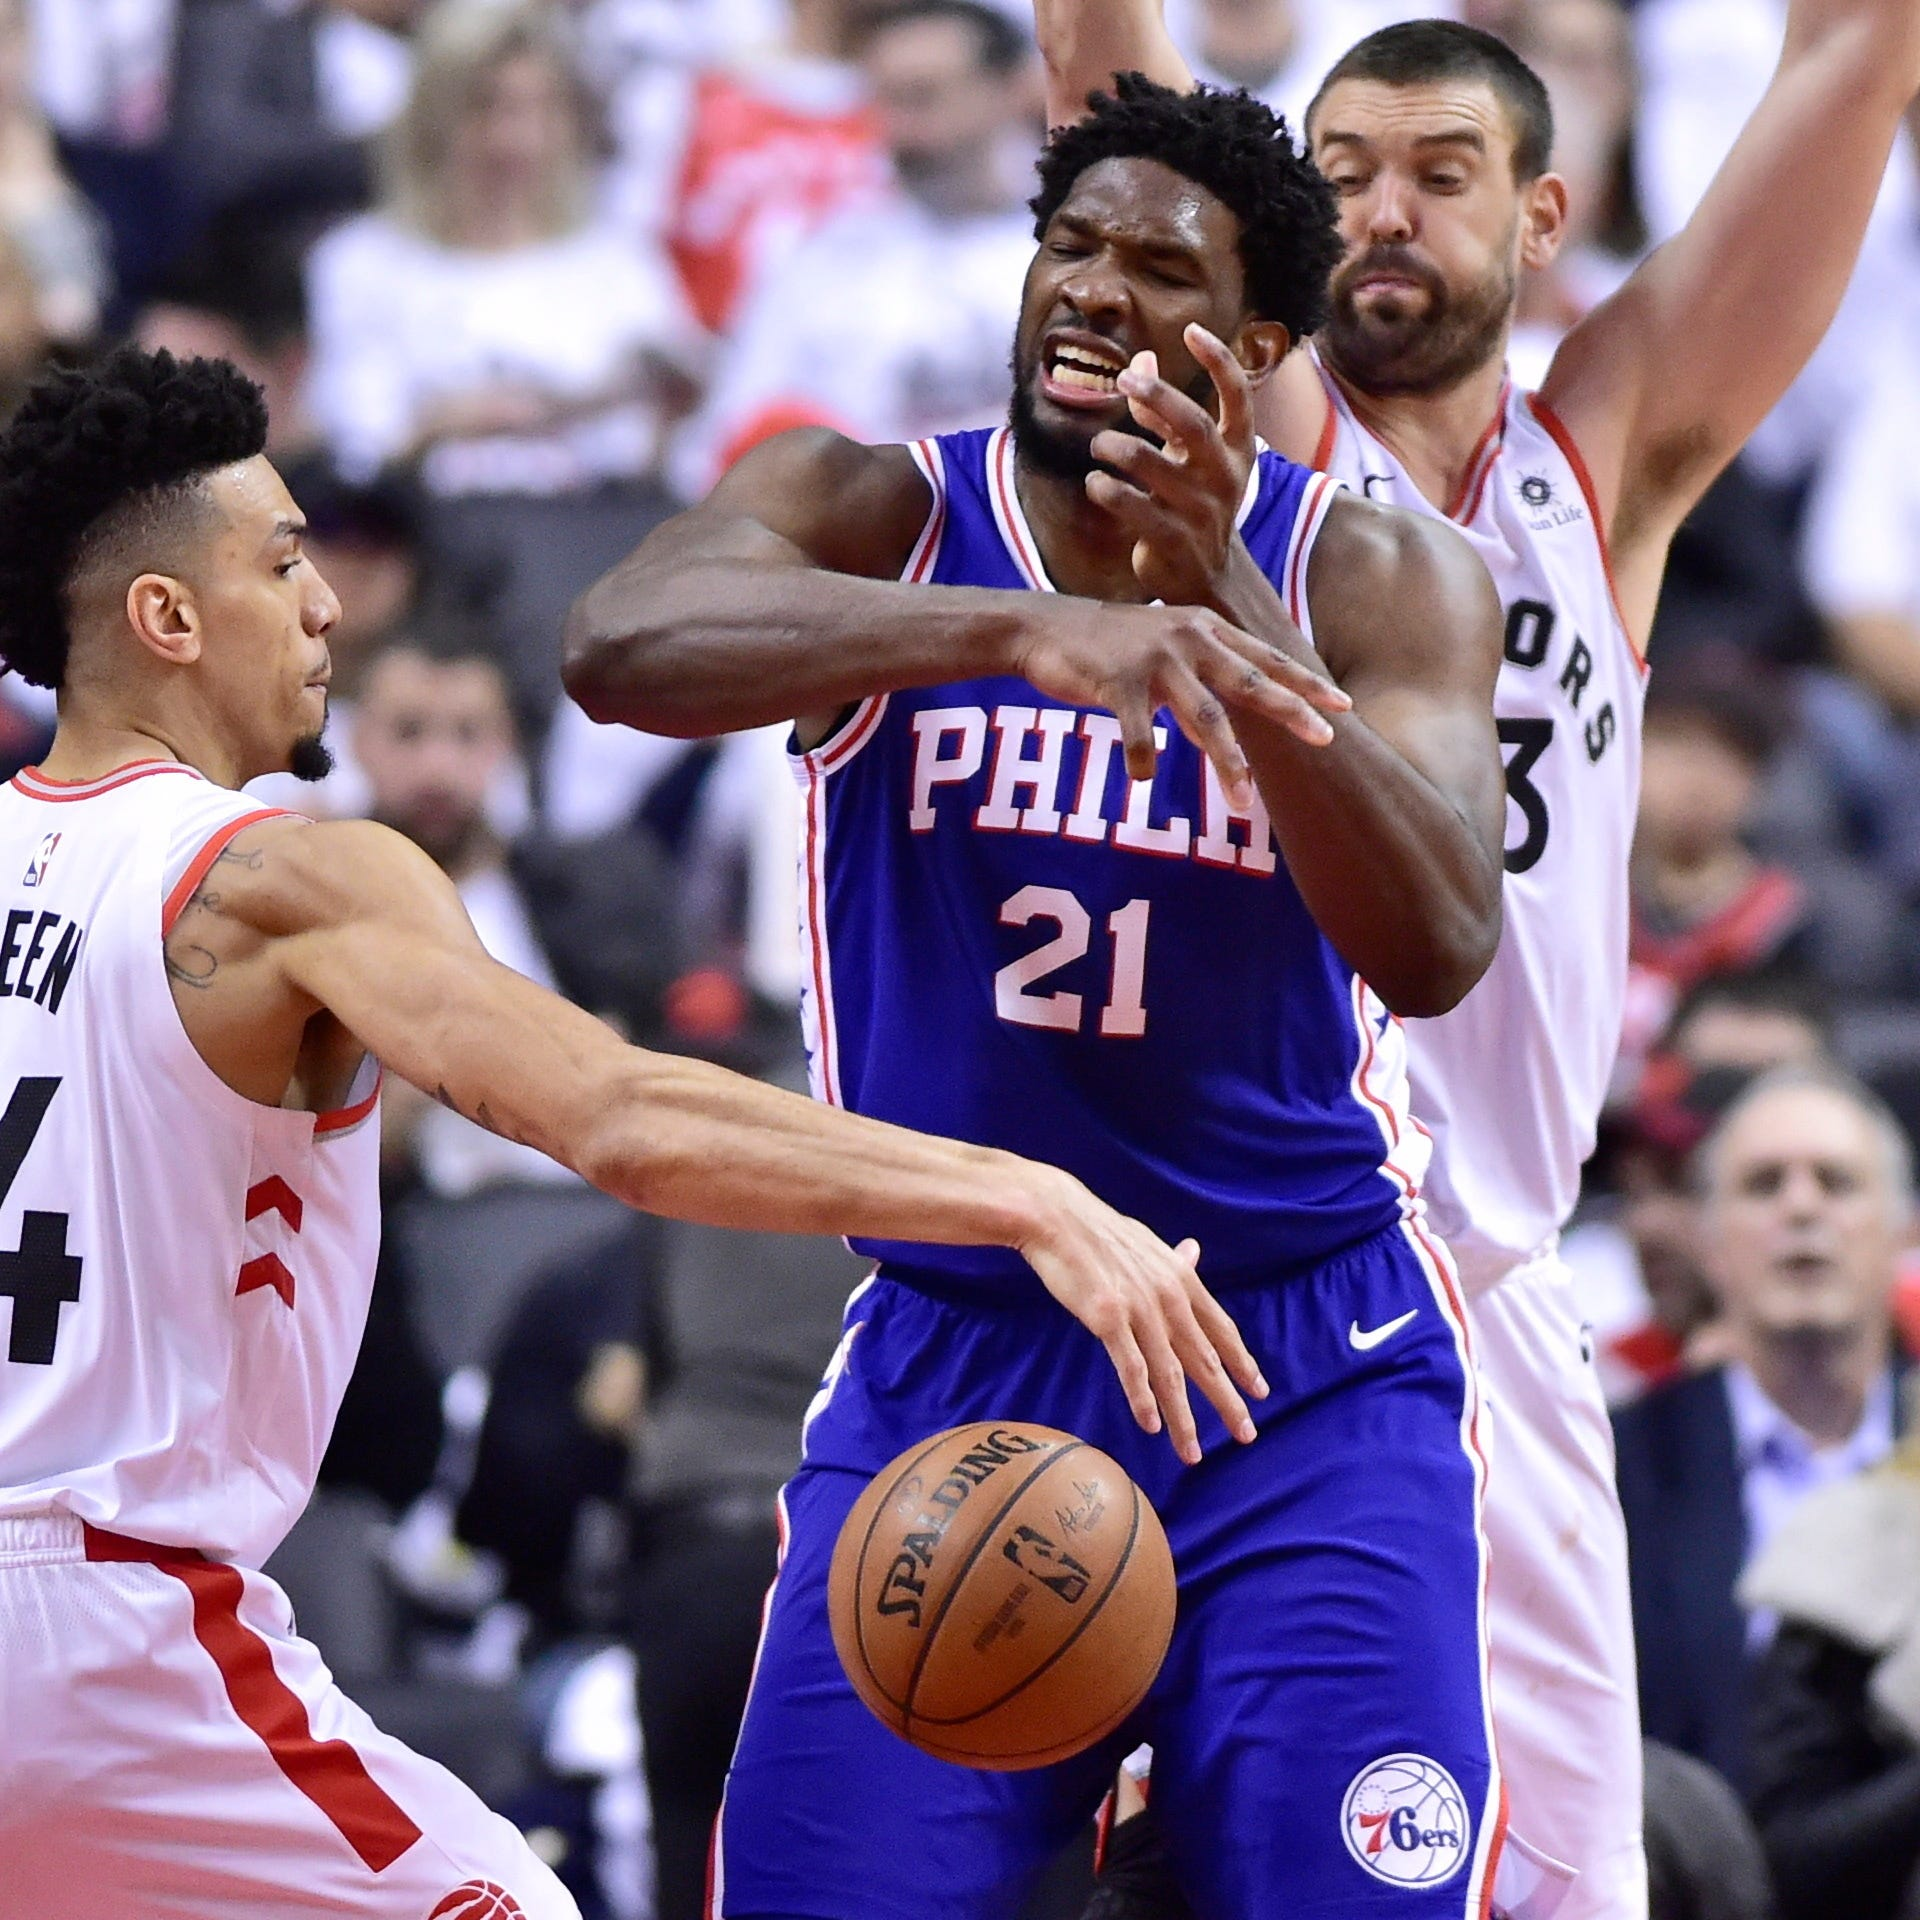 Philadelphia 76ers center Joel Embiid (21) loses the ball as Toronto Raptors guard Danny Green (14) gains control of it during the second half.